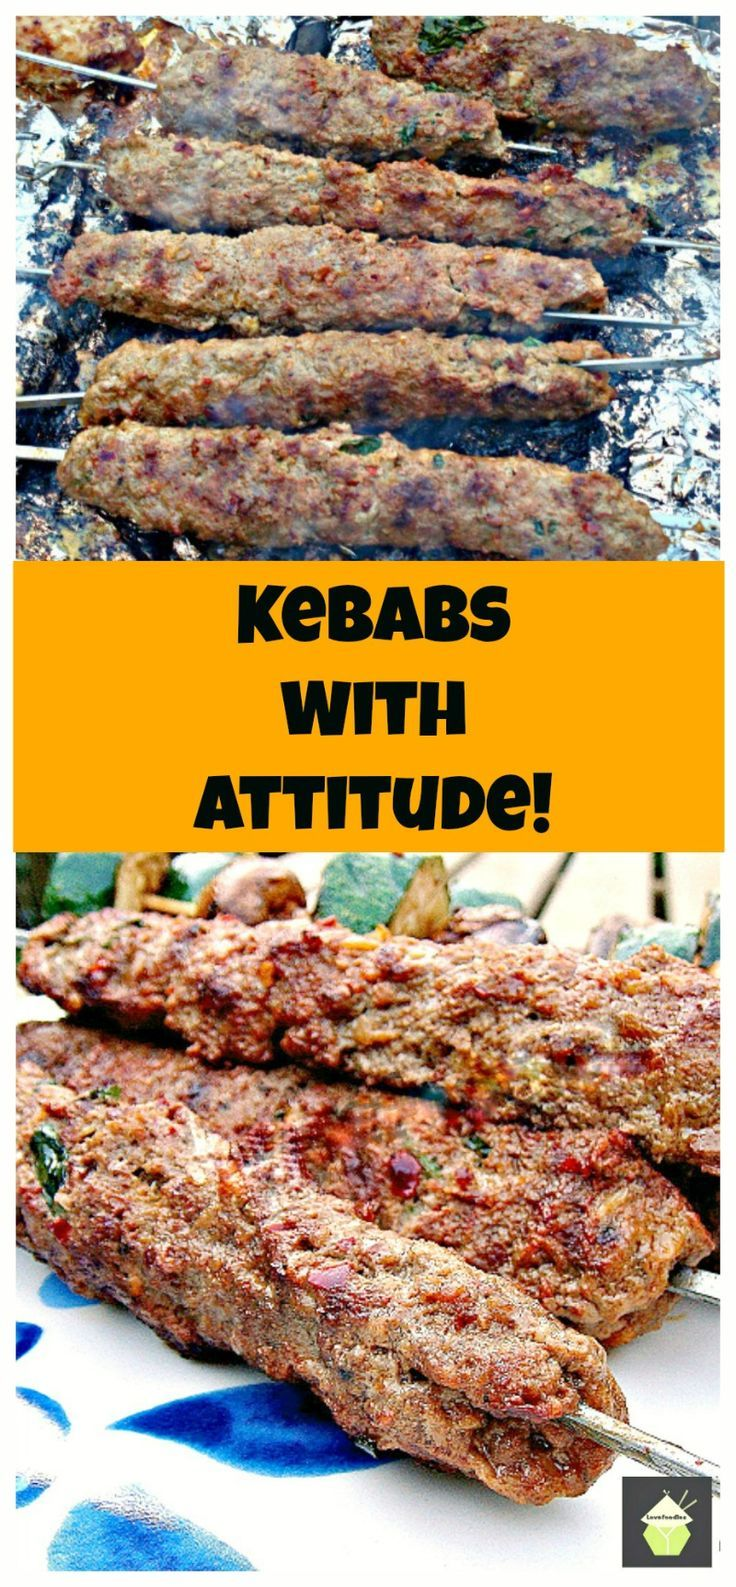 If you visit turkey you have to try the kebab